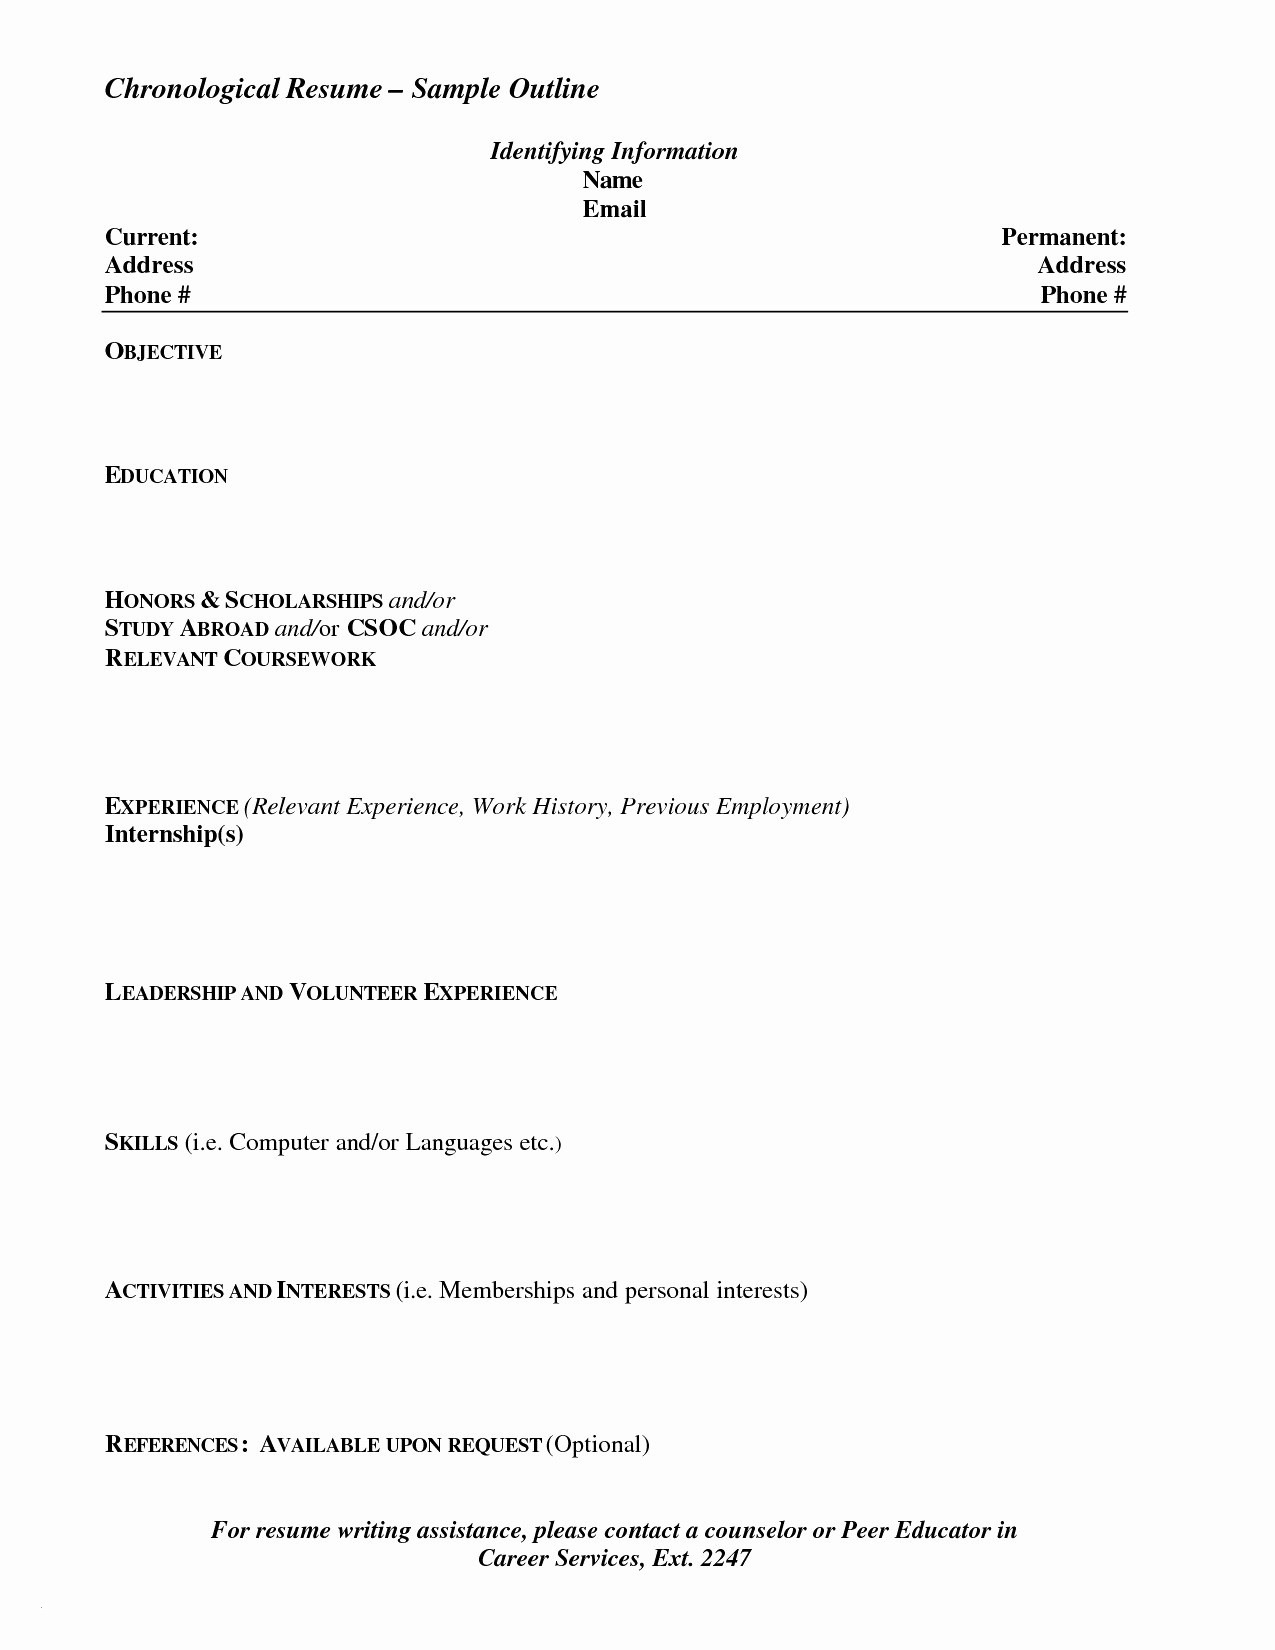 Volunteer Experience On Resume - Volunteer Experience Resume Example Paragraphrewriter